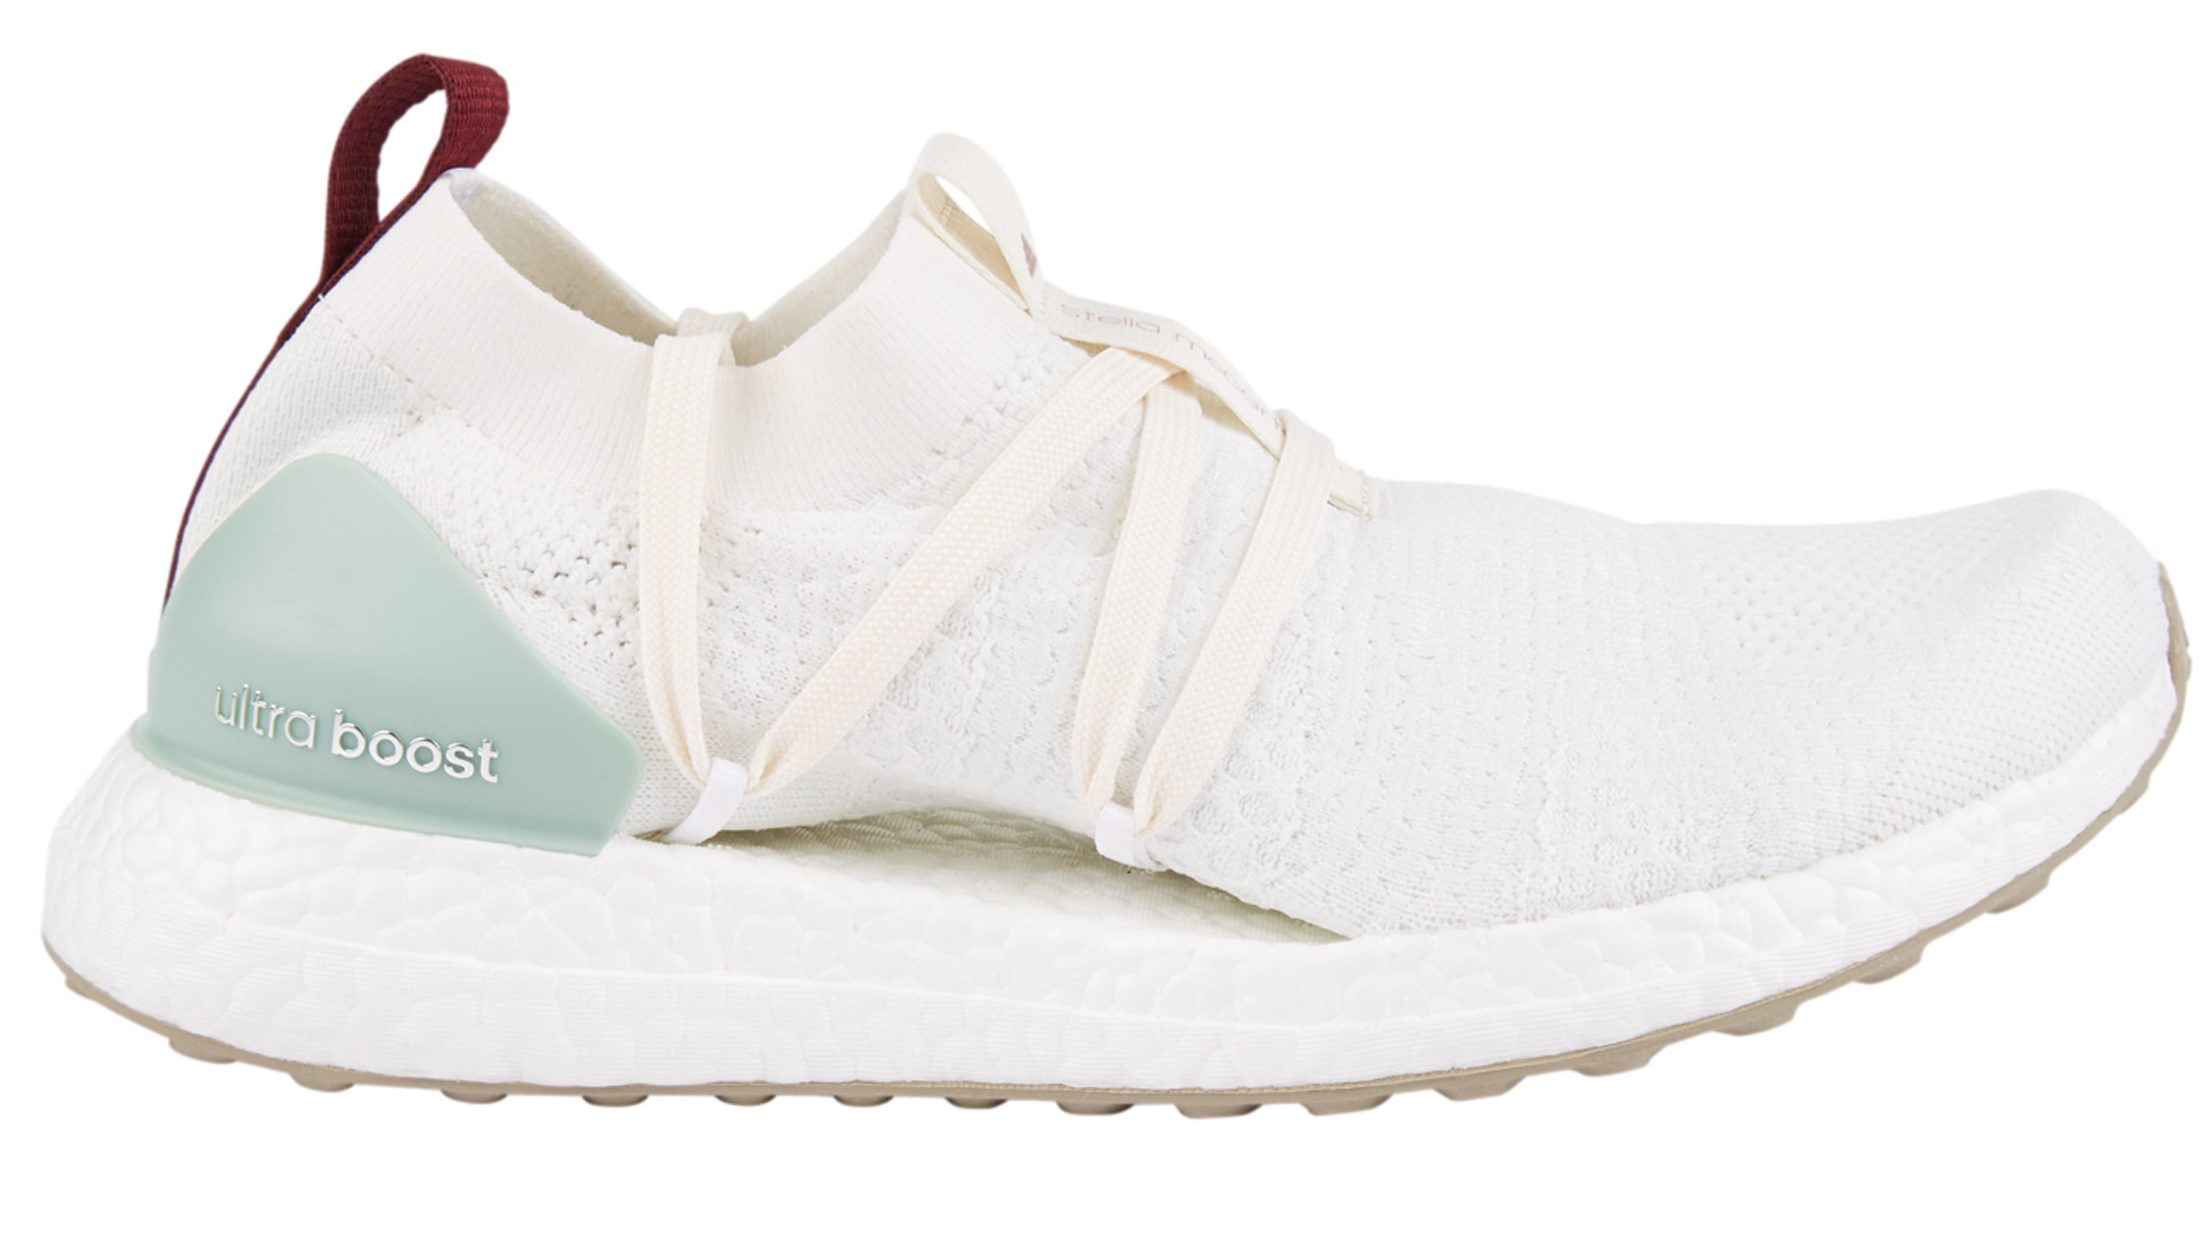 a9d819ecbb4 Stella McCartney and Adidas unveil Parley Ultra Boost X trainers ...